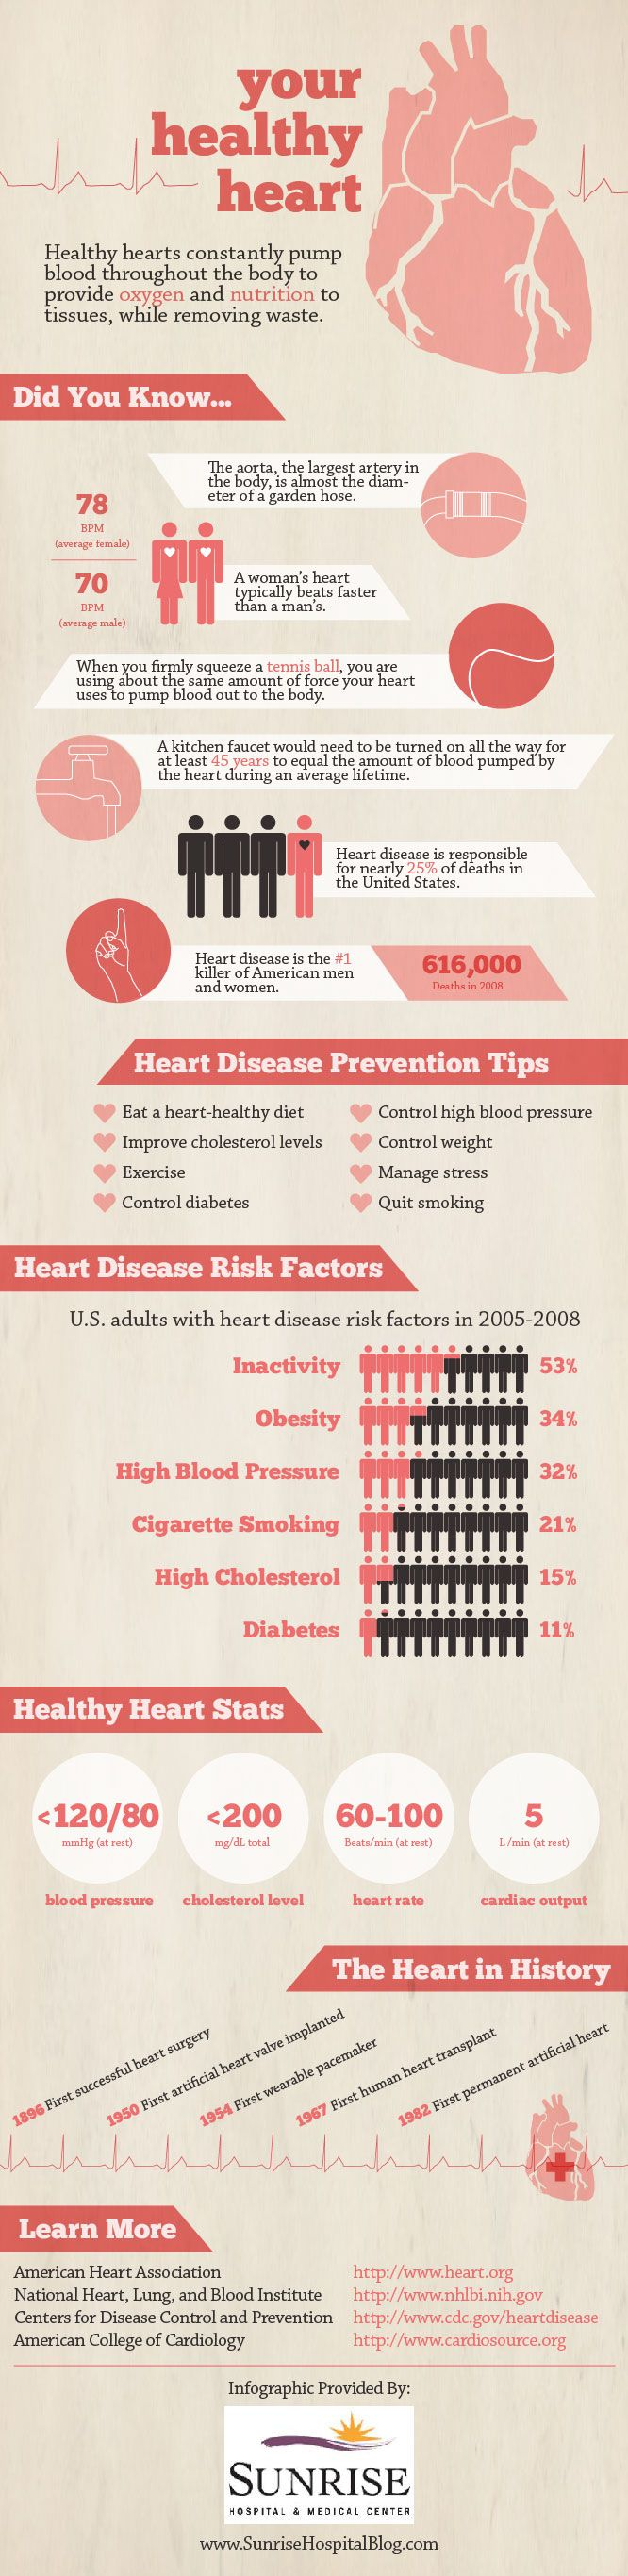 Get the inside scoop on heart disease risk factors and learn what you can do to stay healthy!